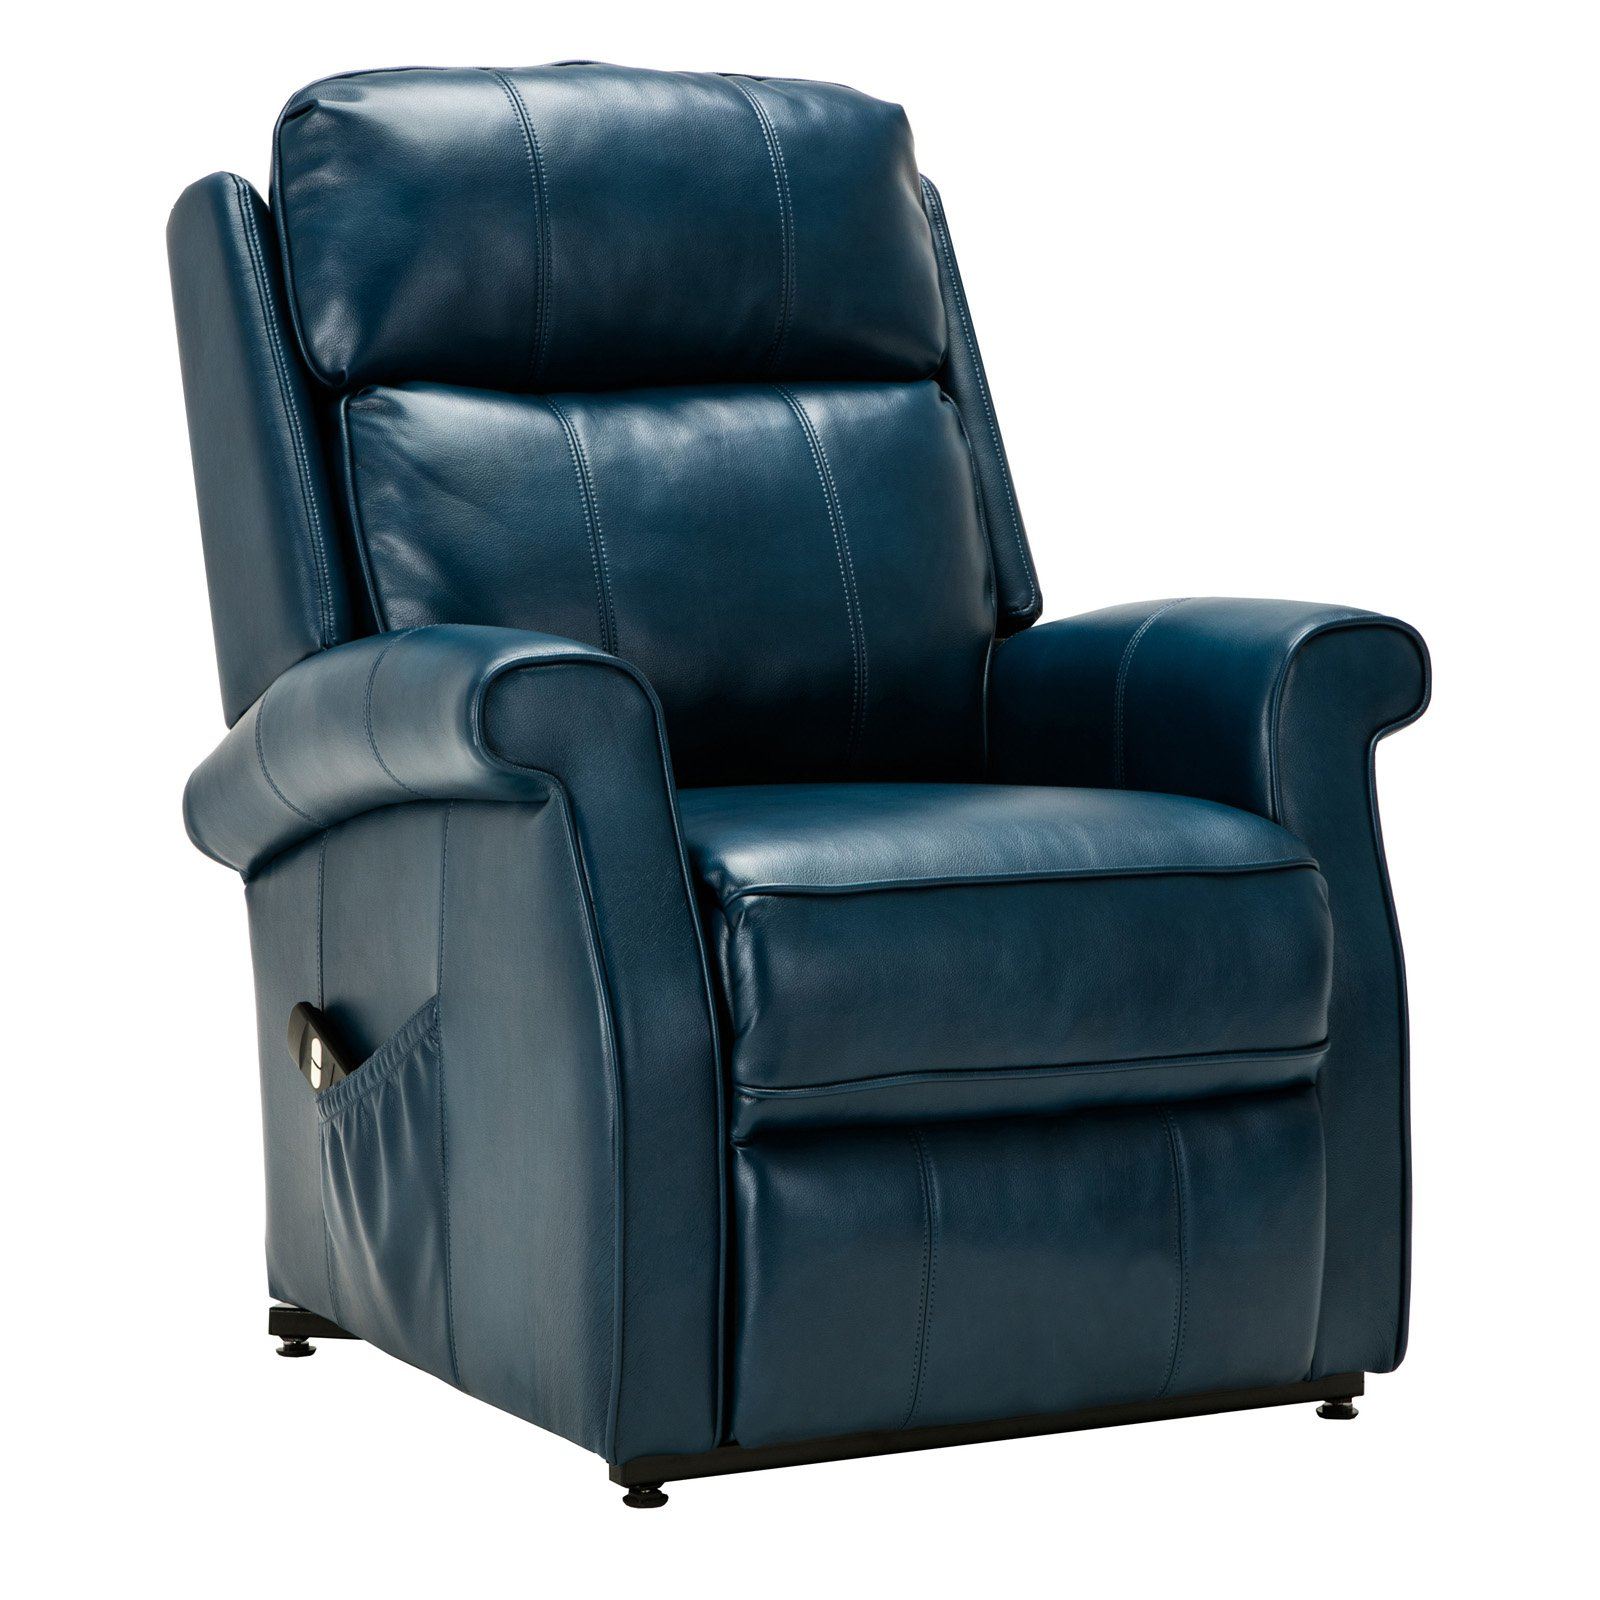 Comfort Pointe Lehman Traditional Lift Recliner